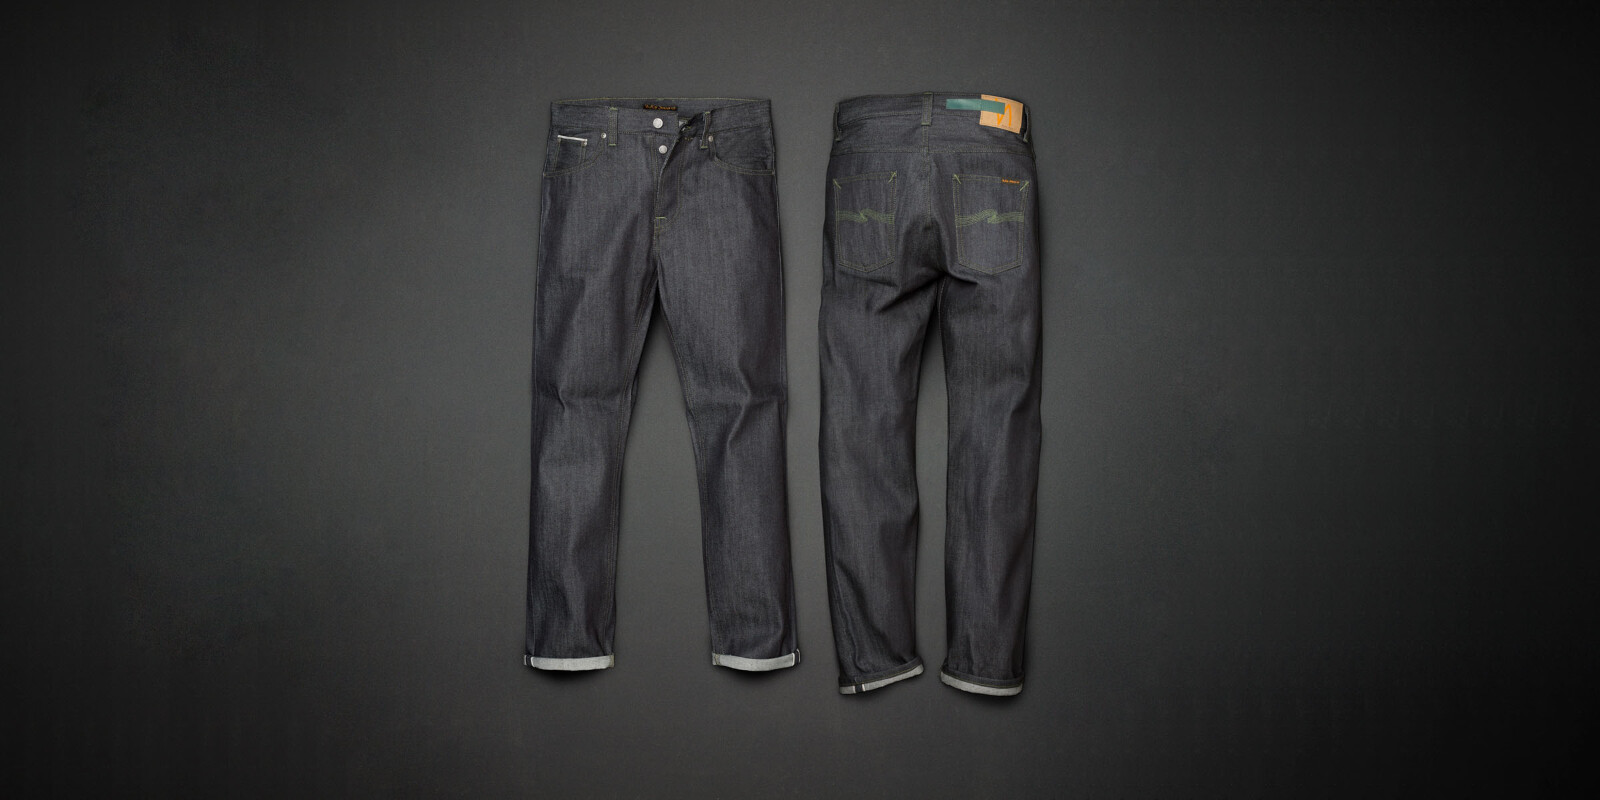 Sleepy Sixten Dry Green Selvage dry jeans